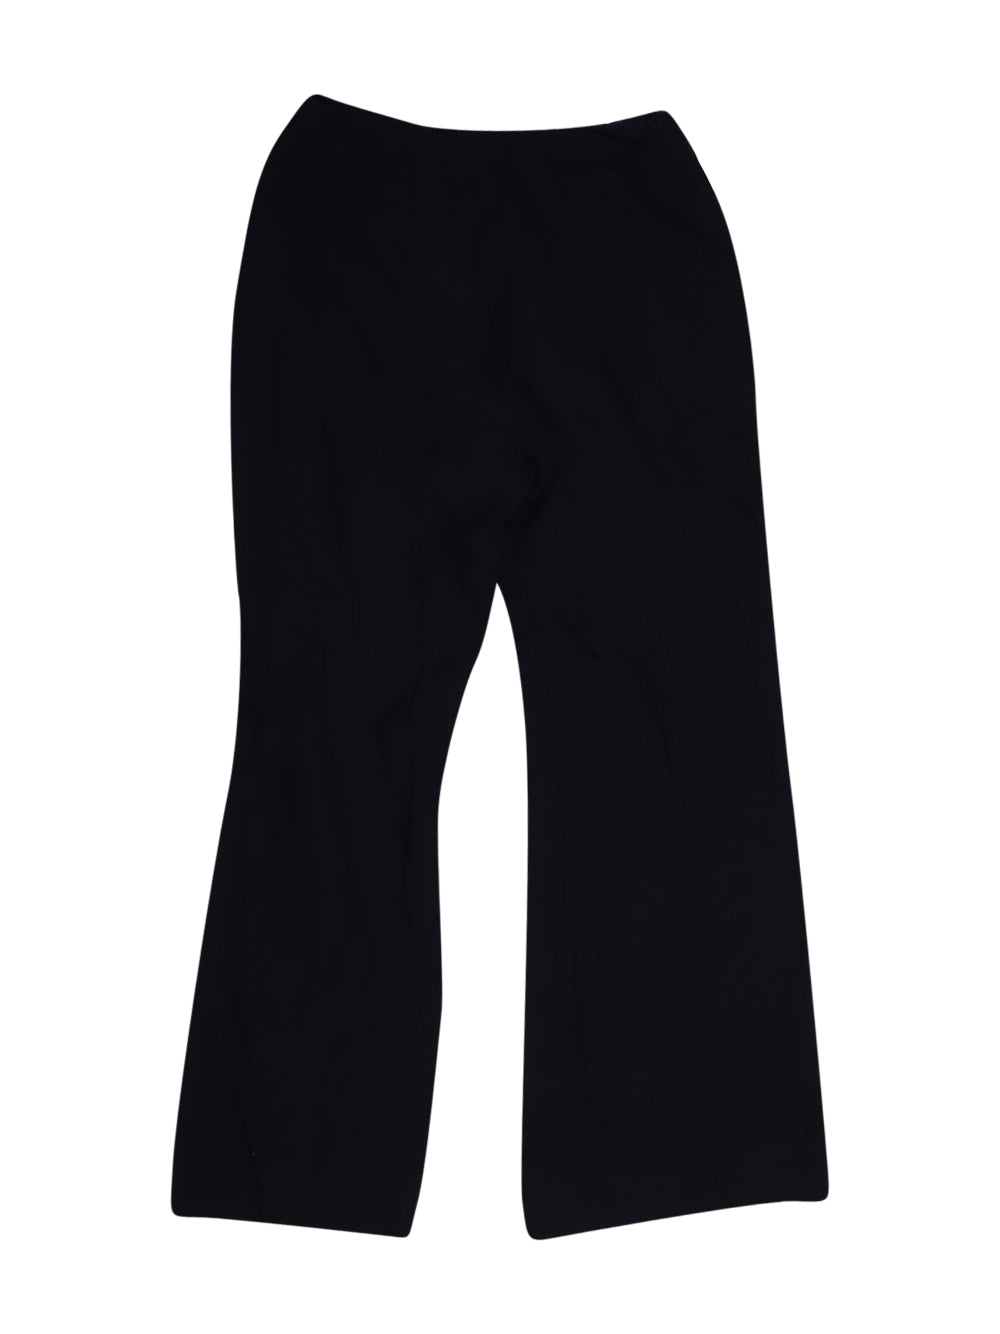 Front photo of Preloved mariella Blue Woman's trousers - size 14/XL